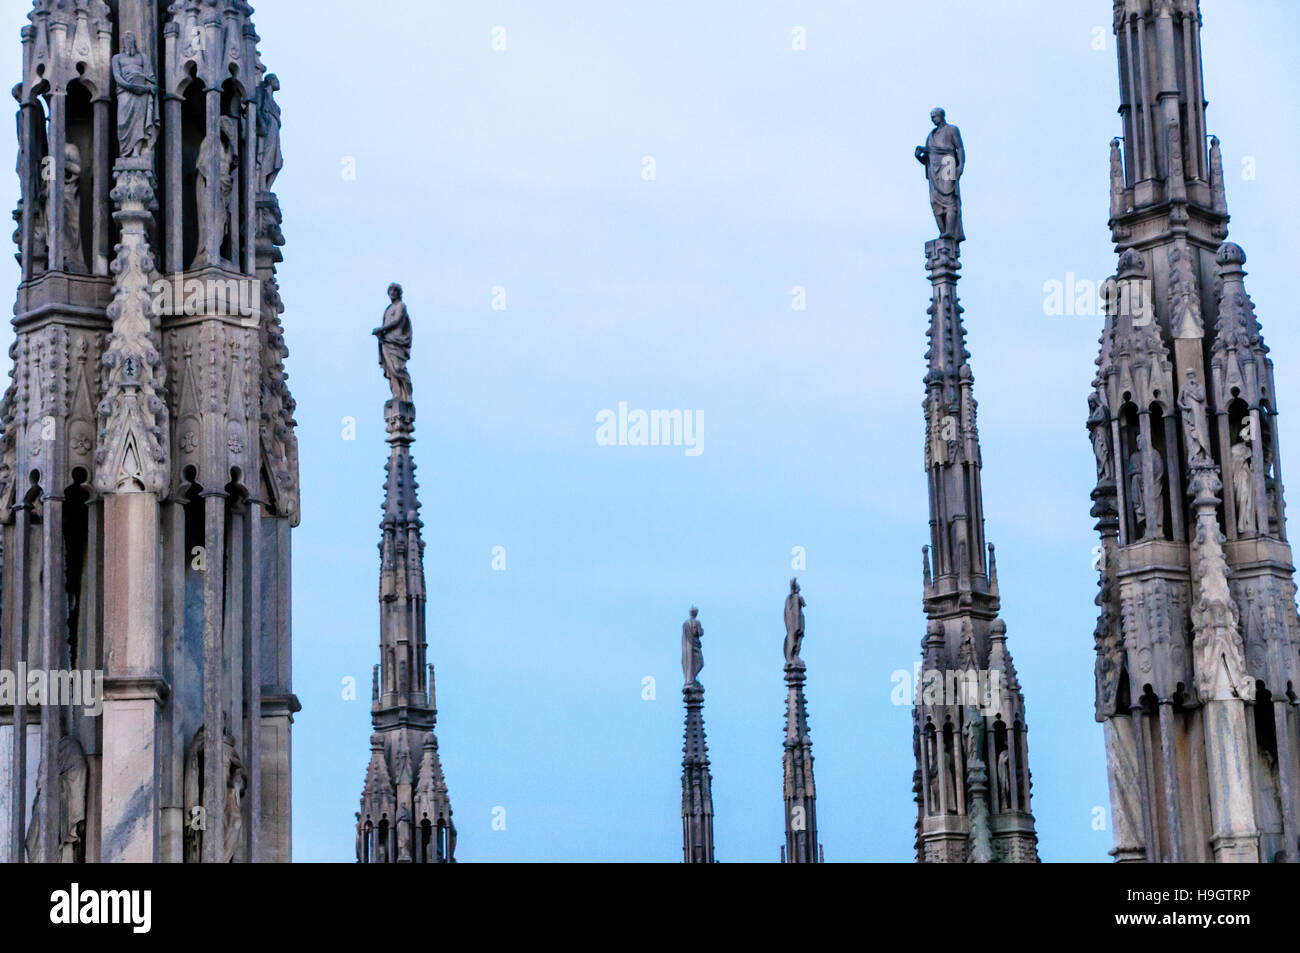 Spires with ornately carved stonework on the roof of the Duomo Milano (Milan Cathedral), Italy - Stock Image